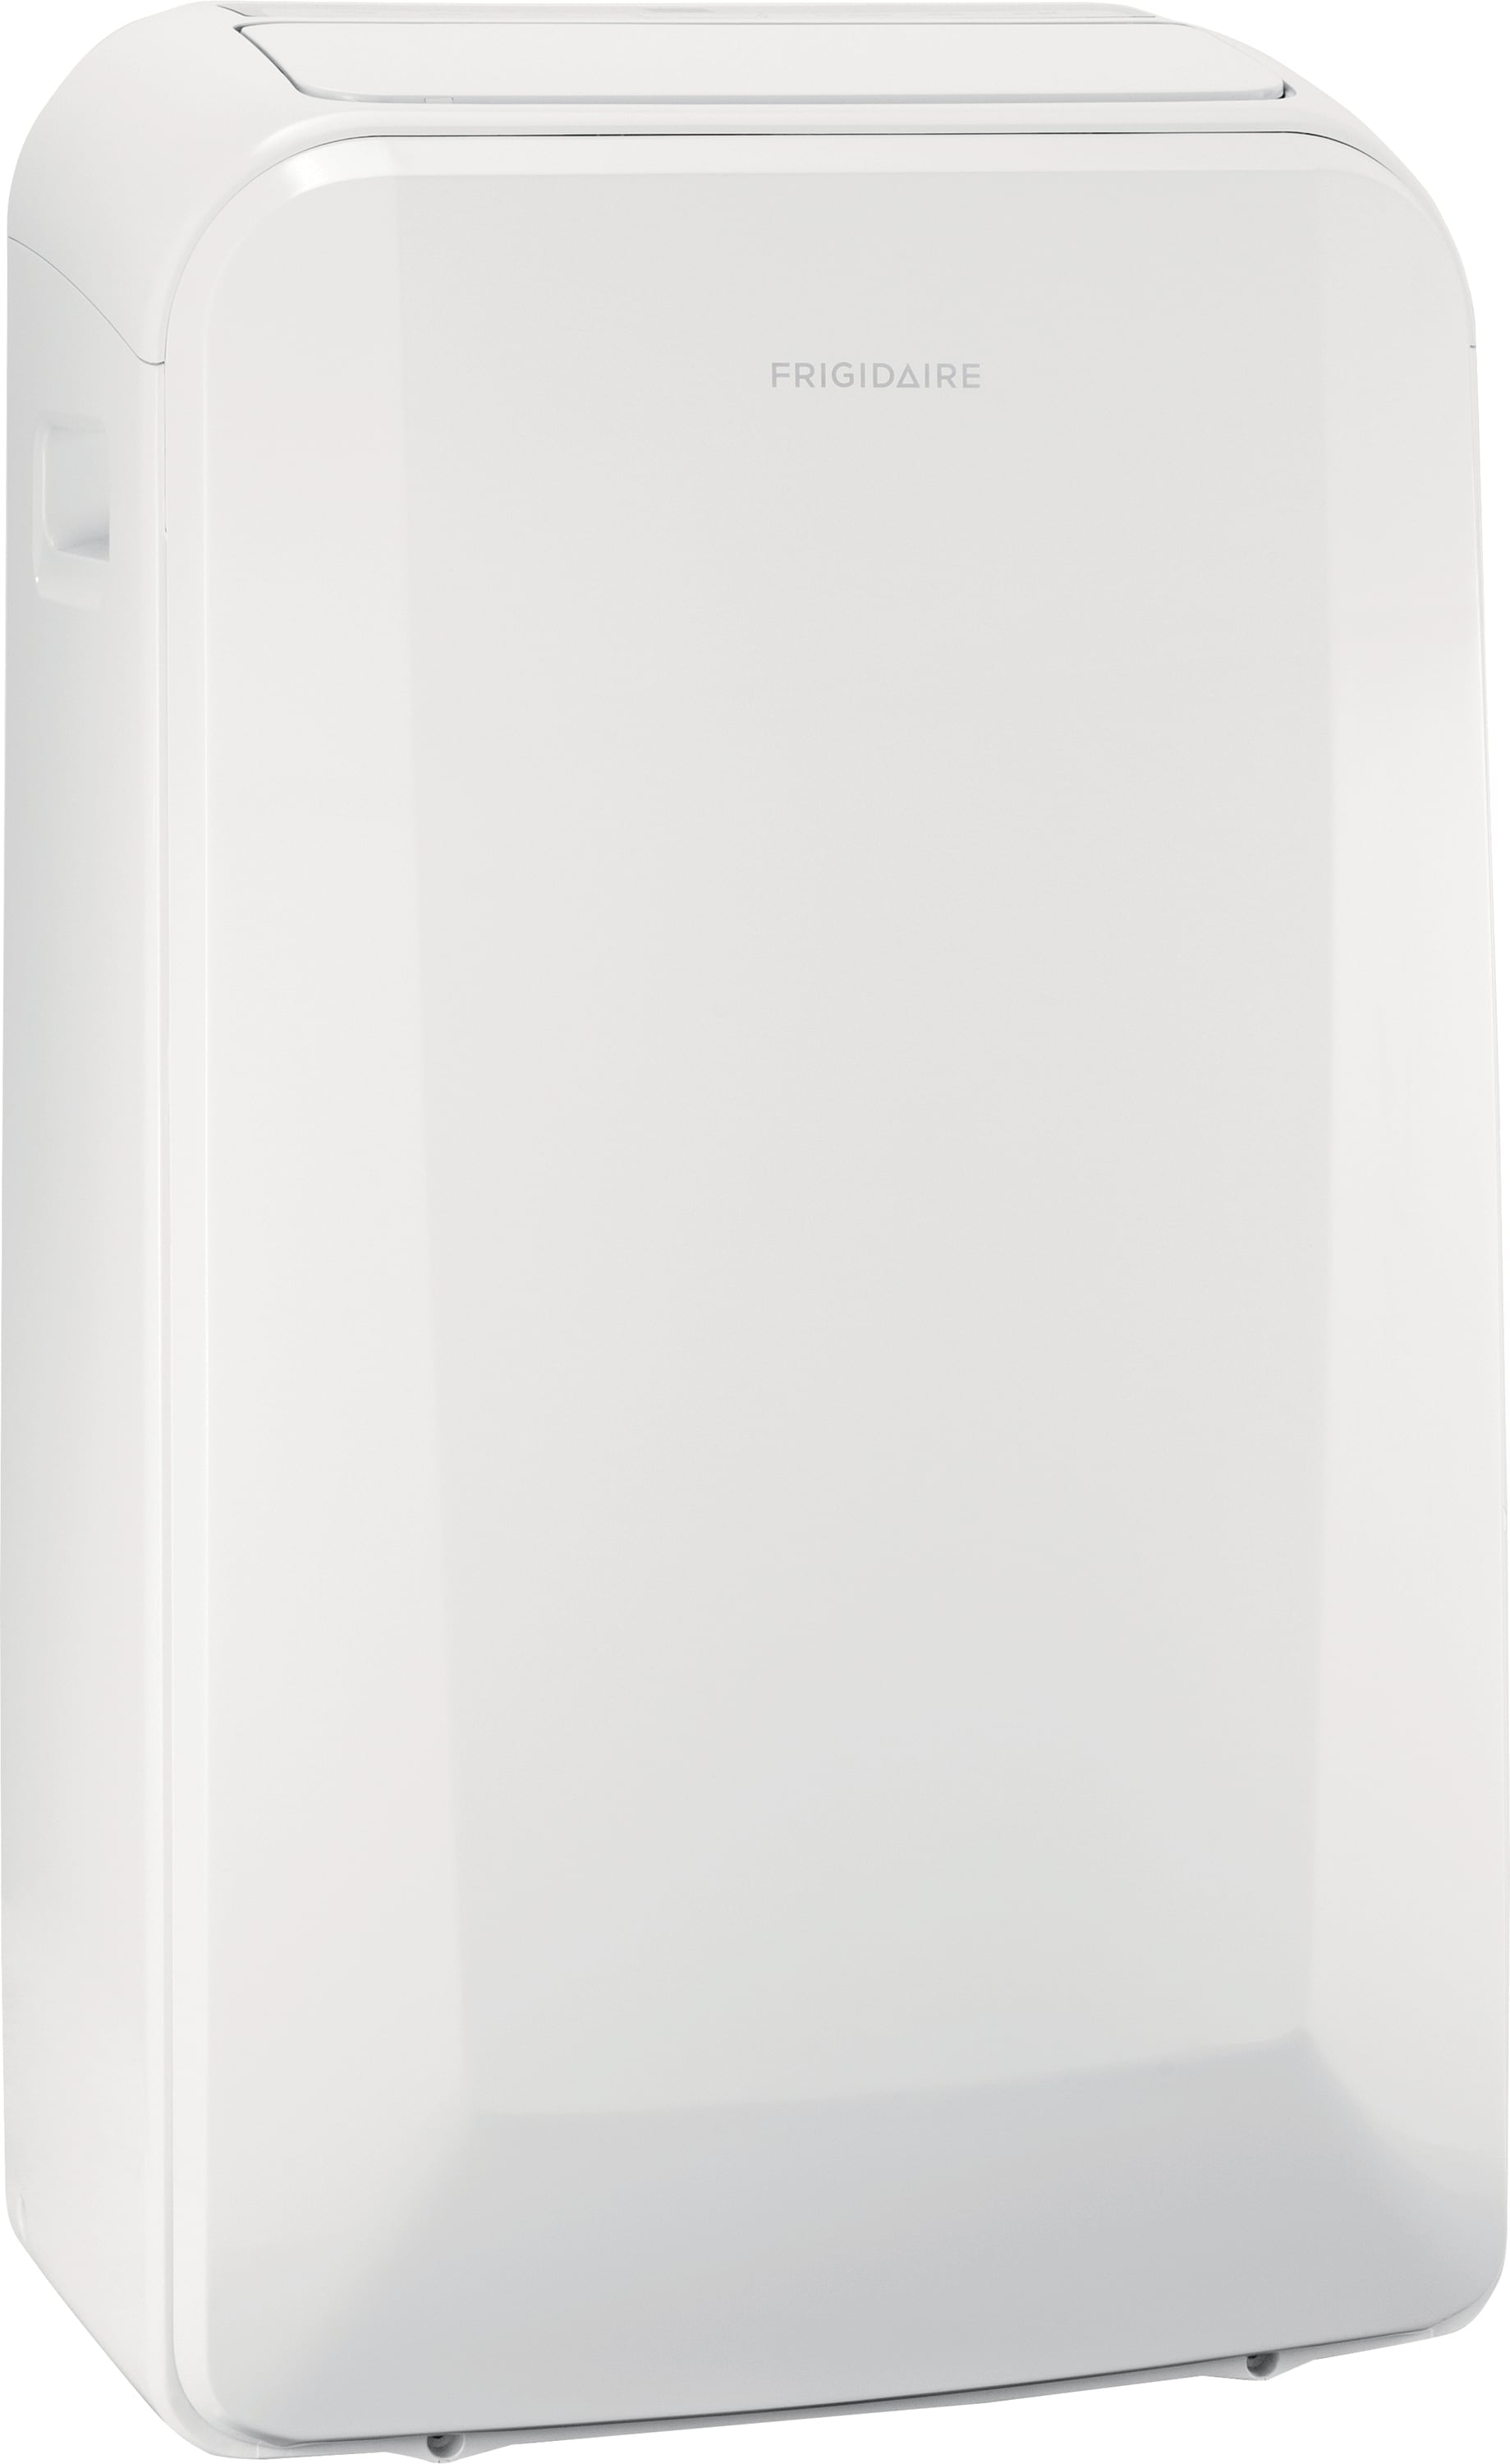 14,000 BTU Portable Room Air Conditioner with Supplemental Heat